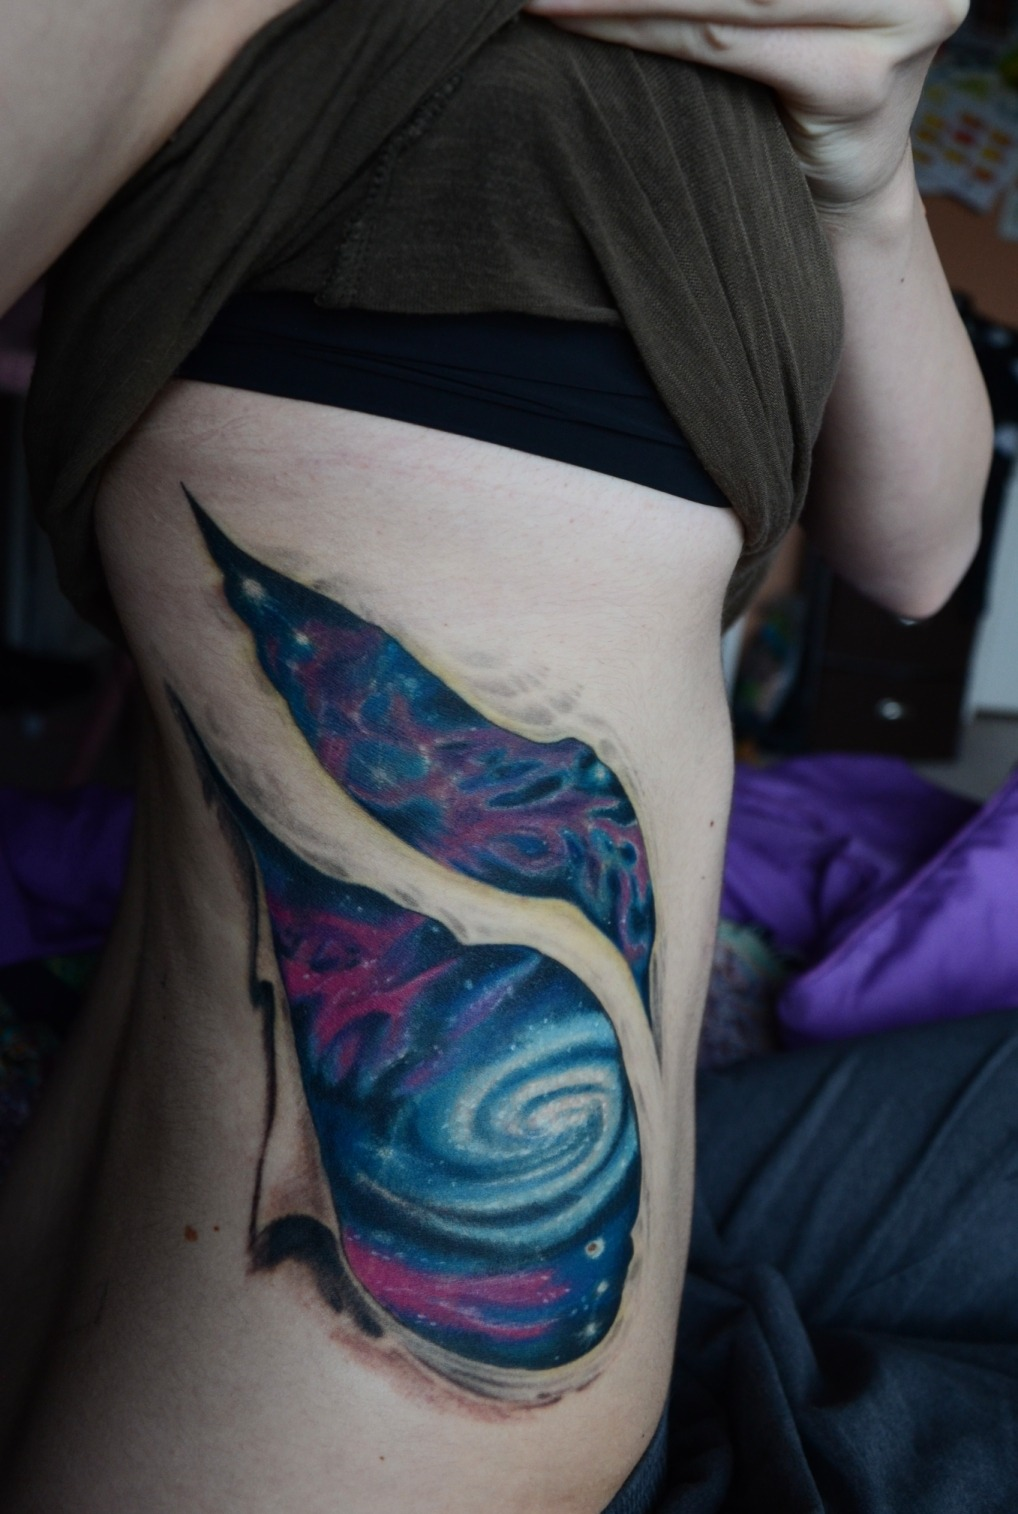 "intentionallyunintentional:    fuckyeahtattoos:    complete; artwork & inked by Steve Lemak of Quillian Tattoo (Allentown, Pennsylvania). I wanted a tattoo that would embrace my love for astronomy and consciousness of being. I remember years ago realizing the fact that we were made of star stuff when I was watching an episode of Carl Sagan's ""Cosmos"" series. Since then, my entire outlook on life has changed. Our ability to experience is so cherishable. I am not one of religion, but the feelings that I experience when I think about our origins, are not unlike spirituality. ""We are part of this universe, we are in this universe, but perhaps more important than both of those facts… is that the universe is in us. When I reflect on that fact… many people feel small, cause they're small and the universe is big, but I feel big! Because, my atoms came from those stars."" - Neil DeGrasse Tyson    This has nothing really to do with the tattoo (which is beautiful btw) but to point out that spirituality and religion are not one in the same.  You can be spiritual (which you are, judging by this description) without being religious, and you can be religious without being spiritual.  Spirituality is something that is hard to define and that some people have very little of, and that others have a lot of.  It's just a sense of being, and does not necessarily pertain to religion.  Calling it ""not unlike spirituality"", in this case, would be true, because it actually is spirituality. Forgive me, I do not mean to correct or call you something you do not consider yourself to be, but there is a difference between the two, and when I realized that I too recognized a certain deeper level of being, which many would ascertain to a religion but that I cannot, knowing or rather believing that the beauty of life both surrounds us and lives within us: learning about the true meanings of spirituality made me realize I'm a deeply spiritual person, but my ""god"" is not a deity at all (and certainly no religion), merely every observable thing around us (whereas yours is our star stuff and awesome ability of experience and conscious thought.)  :)  Not a higher being, just a divine one.  One does not need a god to believe that.  <3    Was poring through comments on my tatty through my FYT submission. This fellow Tumblr'er hit the nail on the head. yesyesyes"